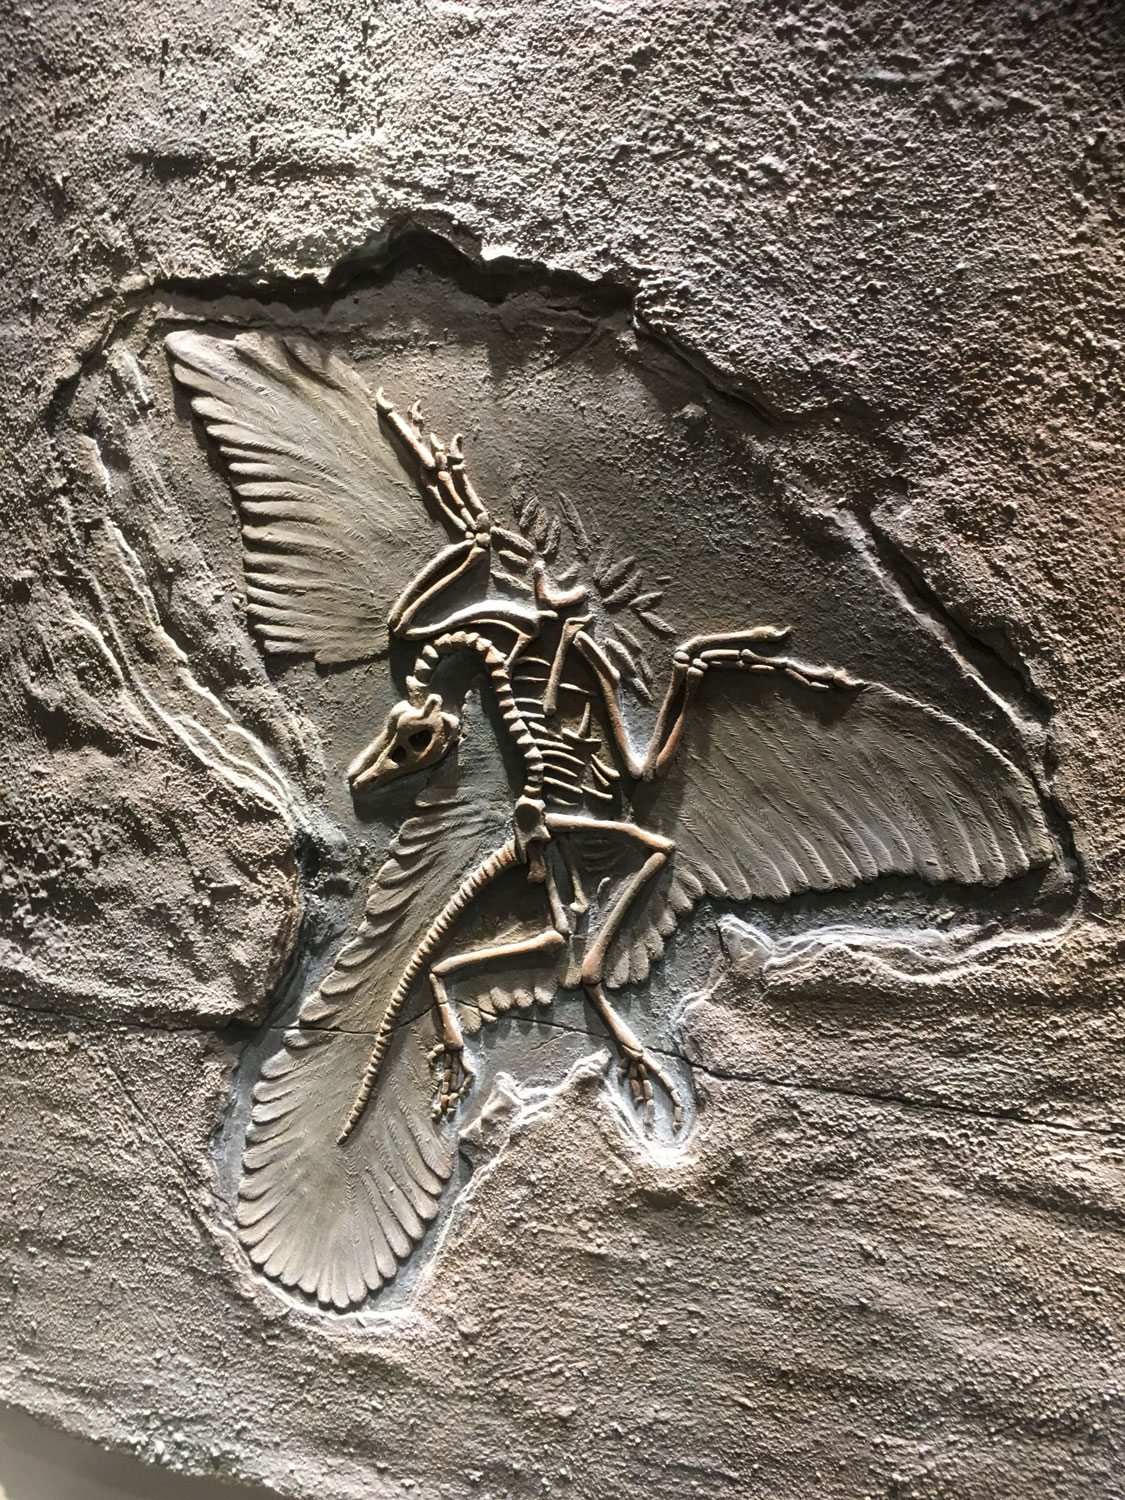 The oldest bird genus found to date, from the Late Jurassic (150 million years ago), from the exhibition of the Chicxulub meteorite.